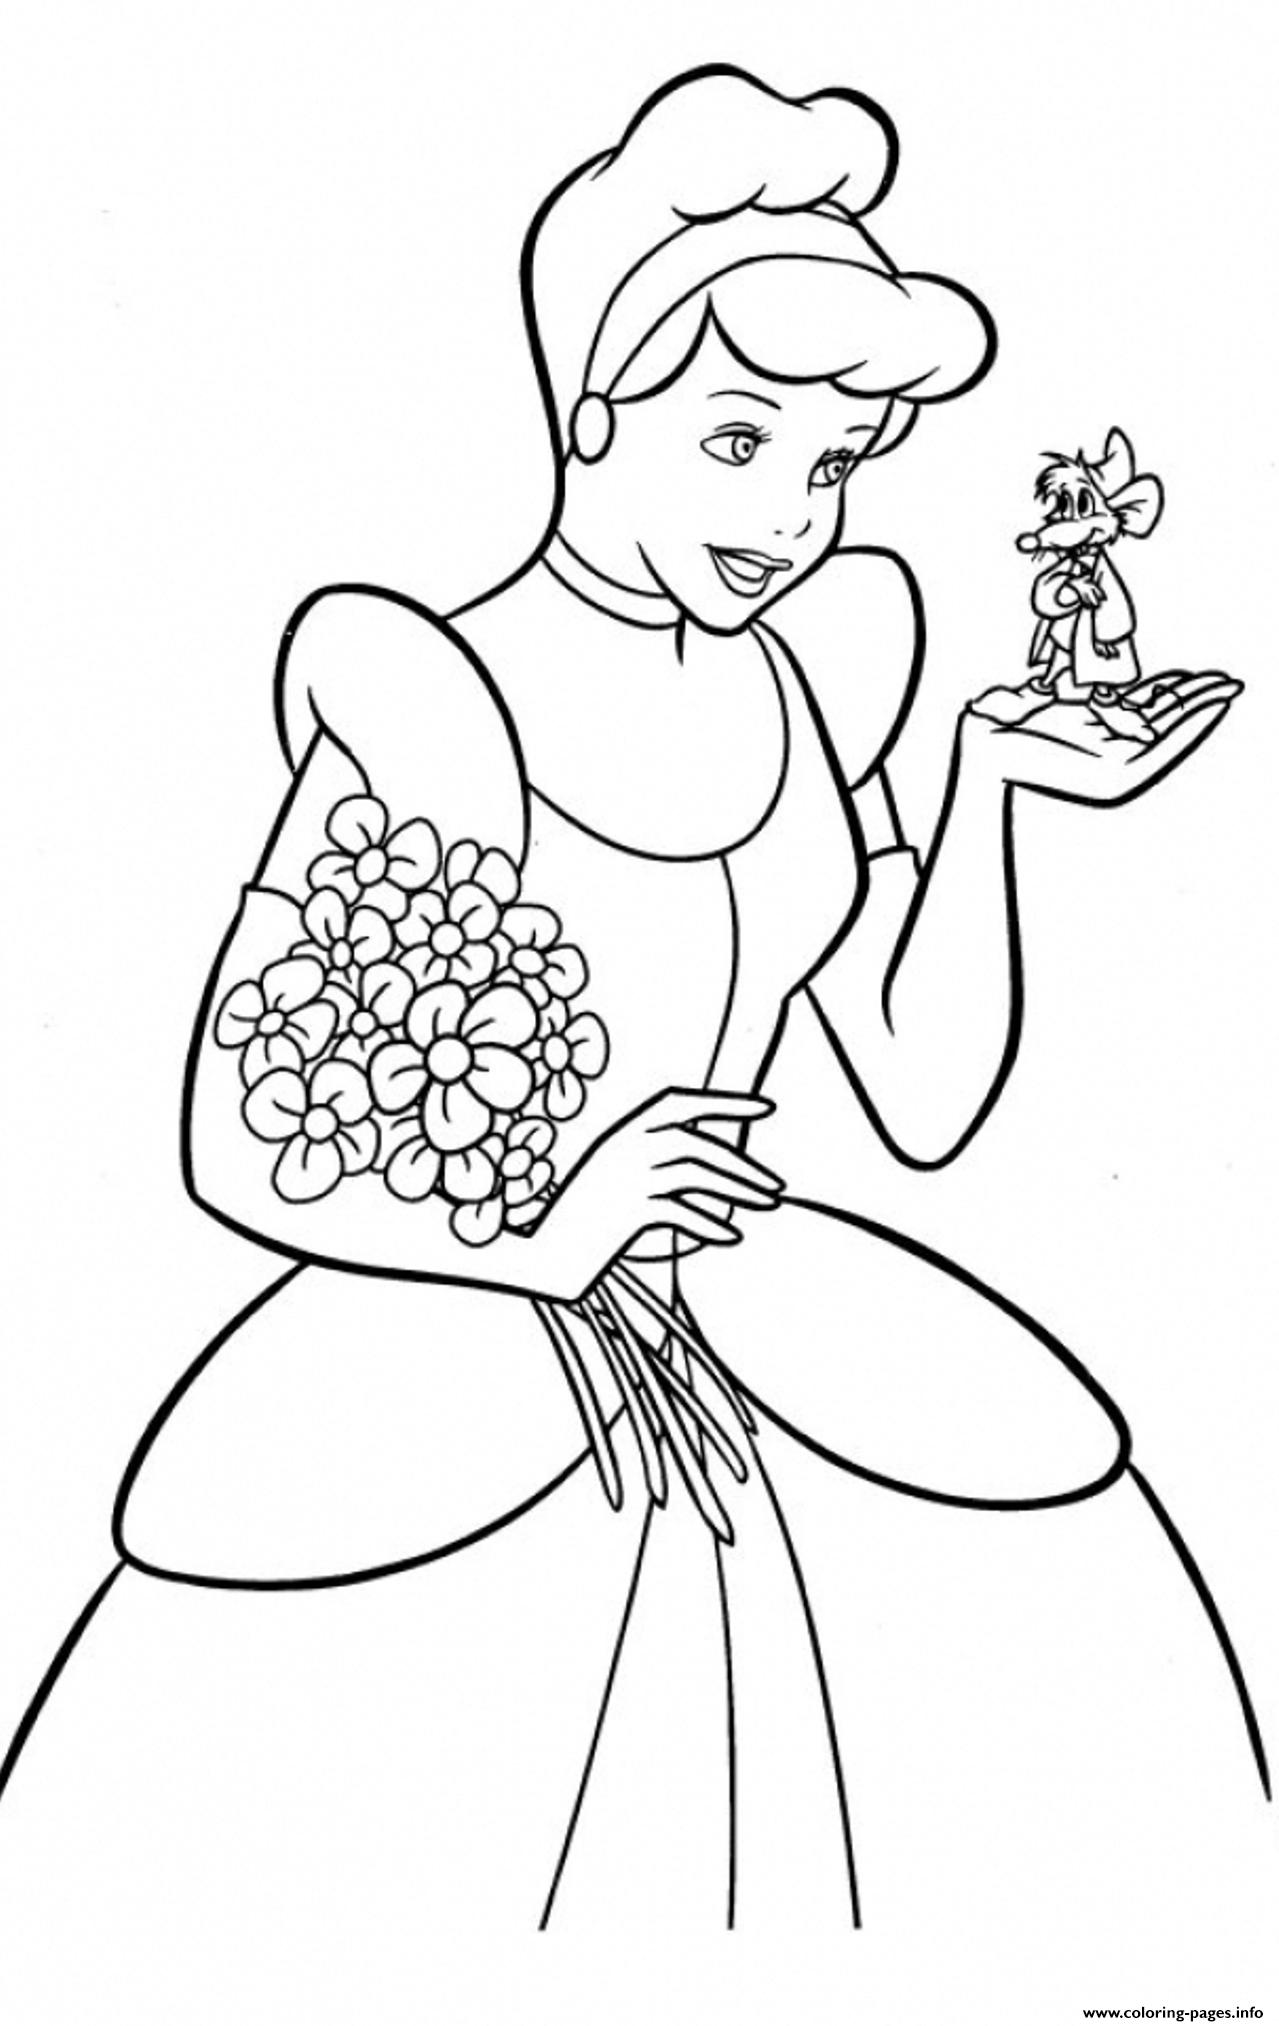 Princess Free Cinderella S For Kids9102 Coloring Pages ...